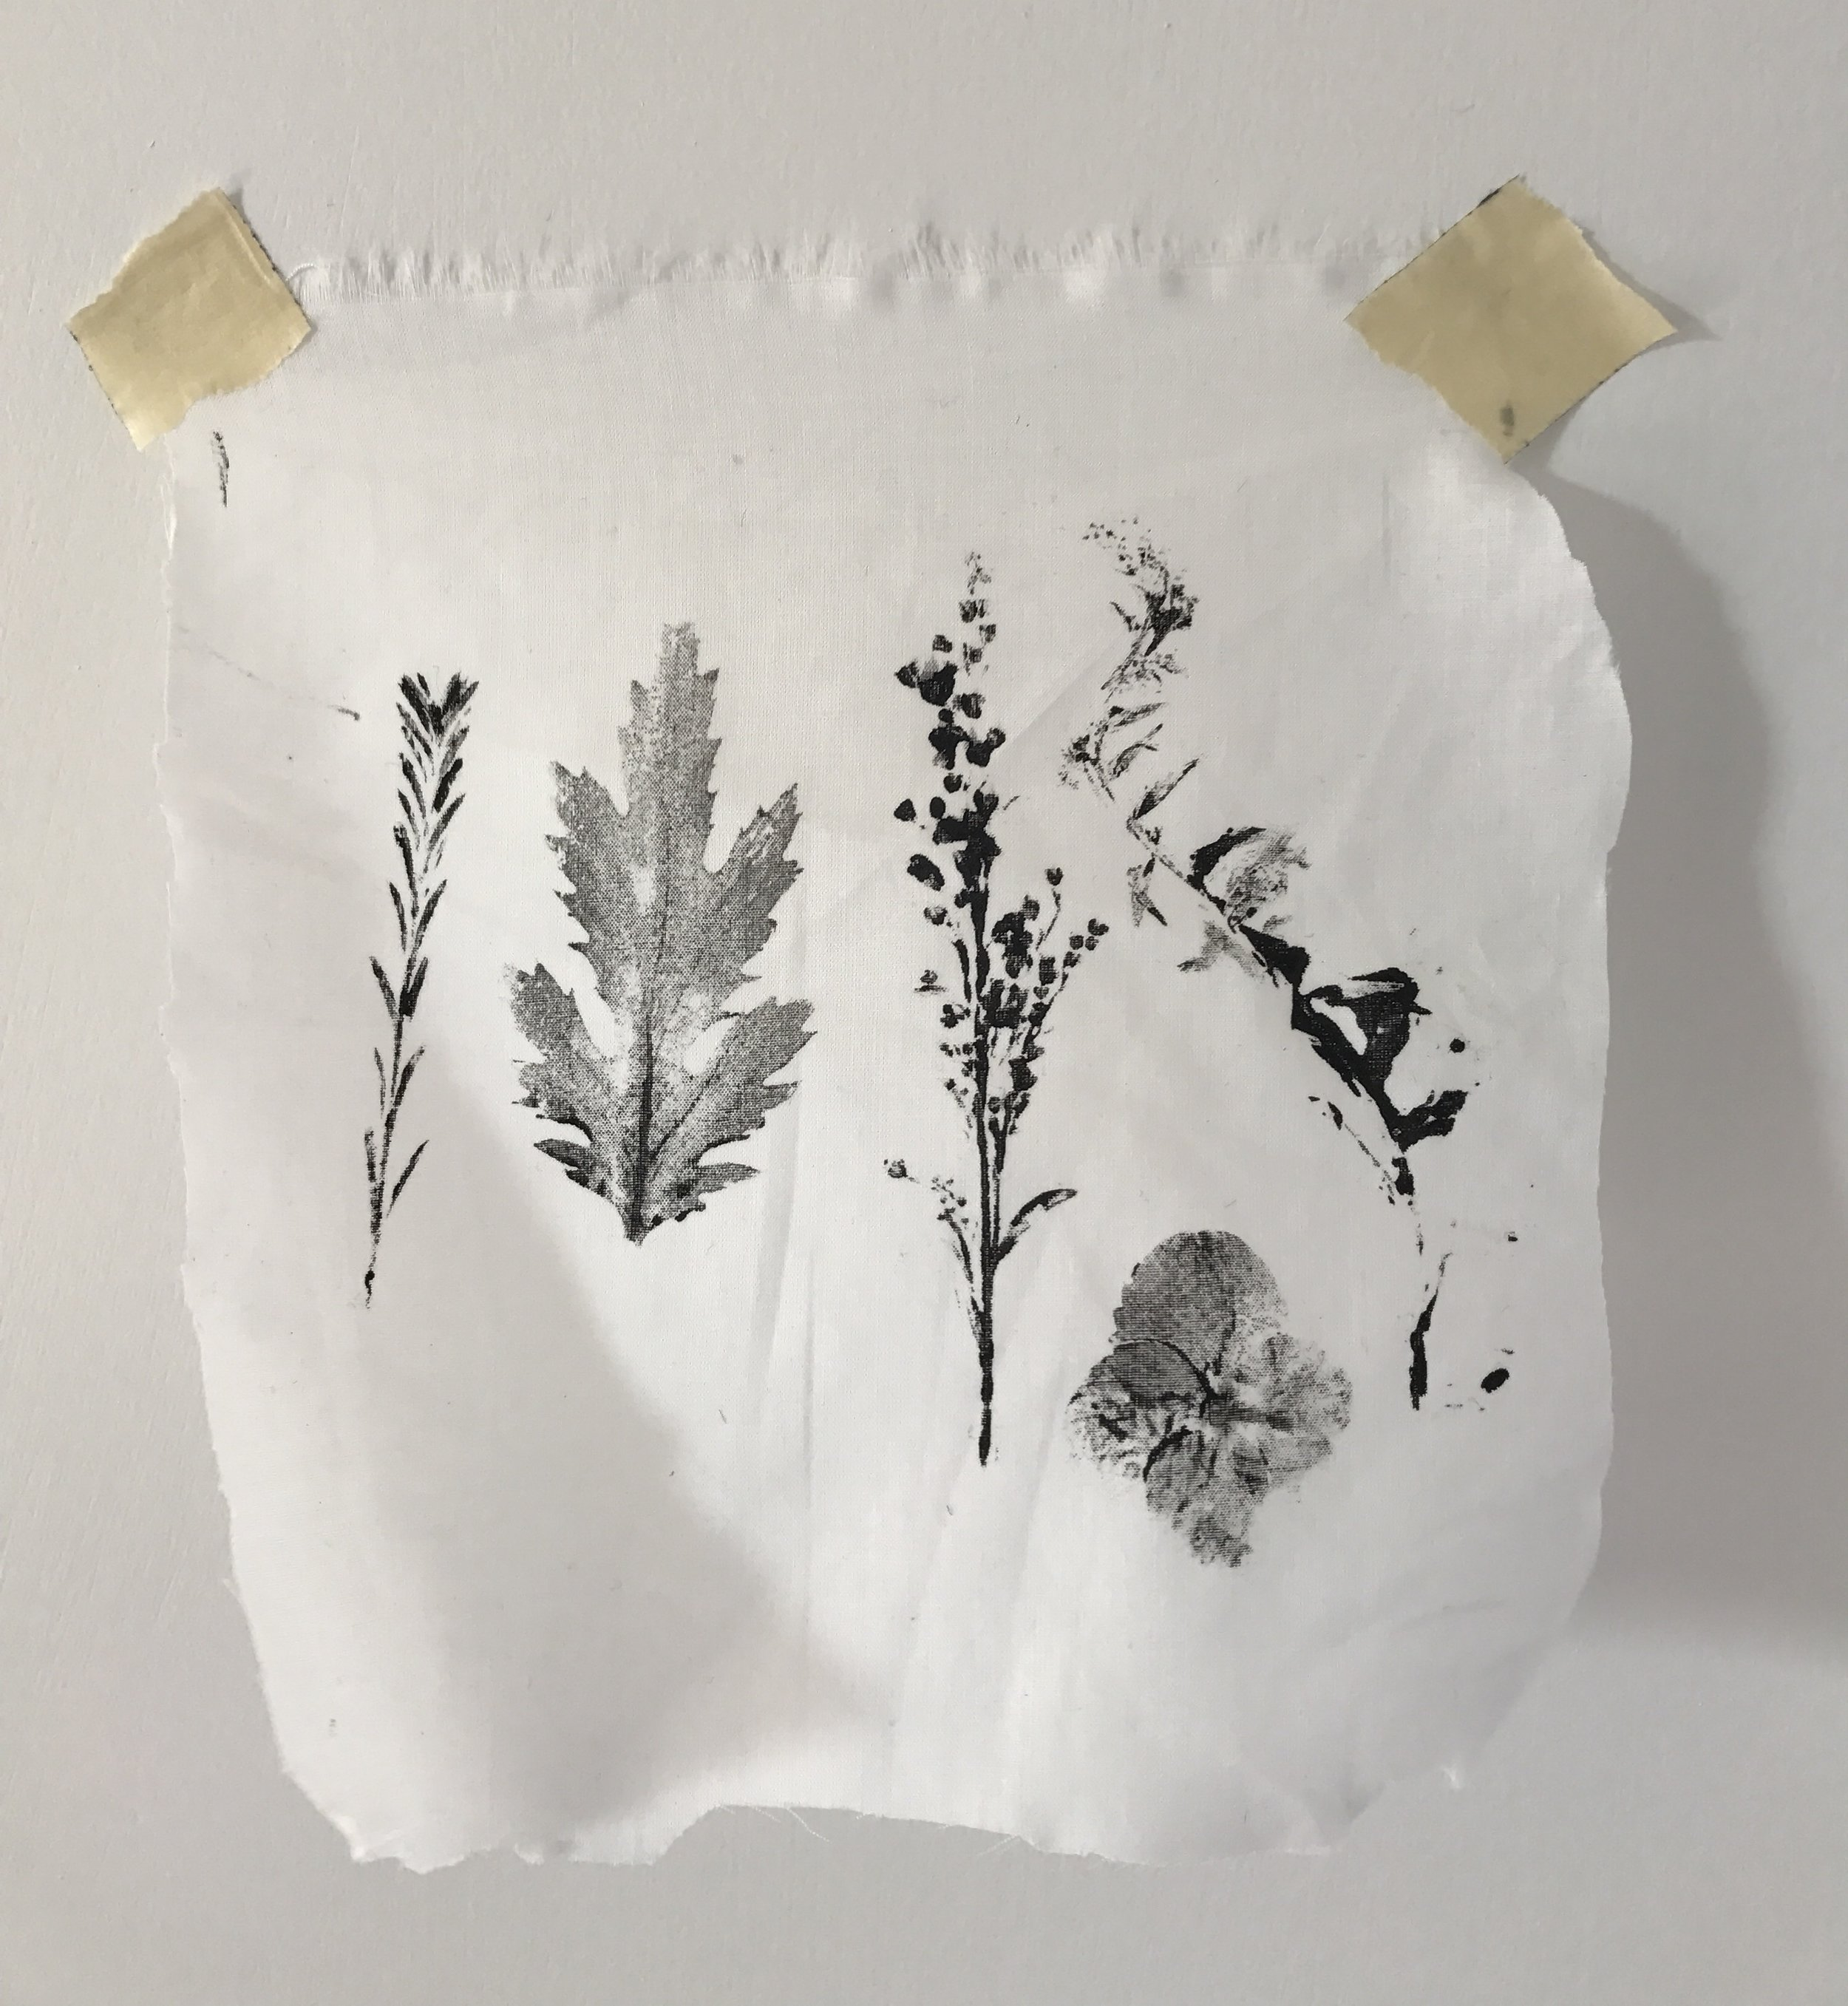 Developing a print with live flowers.